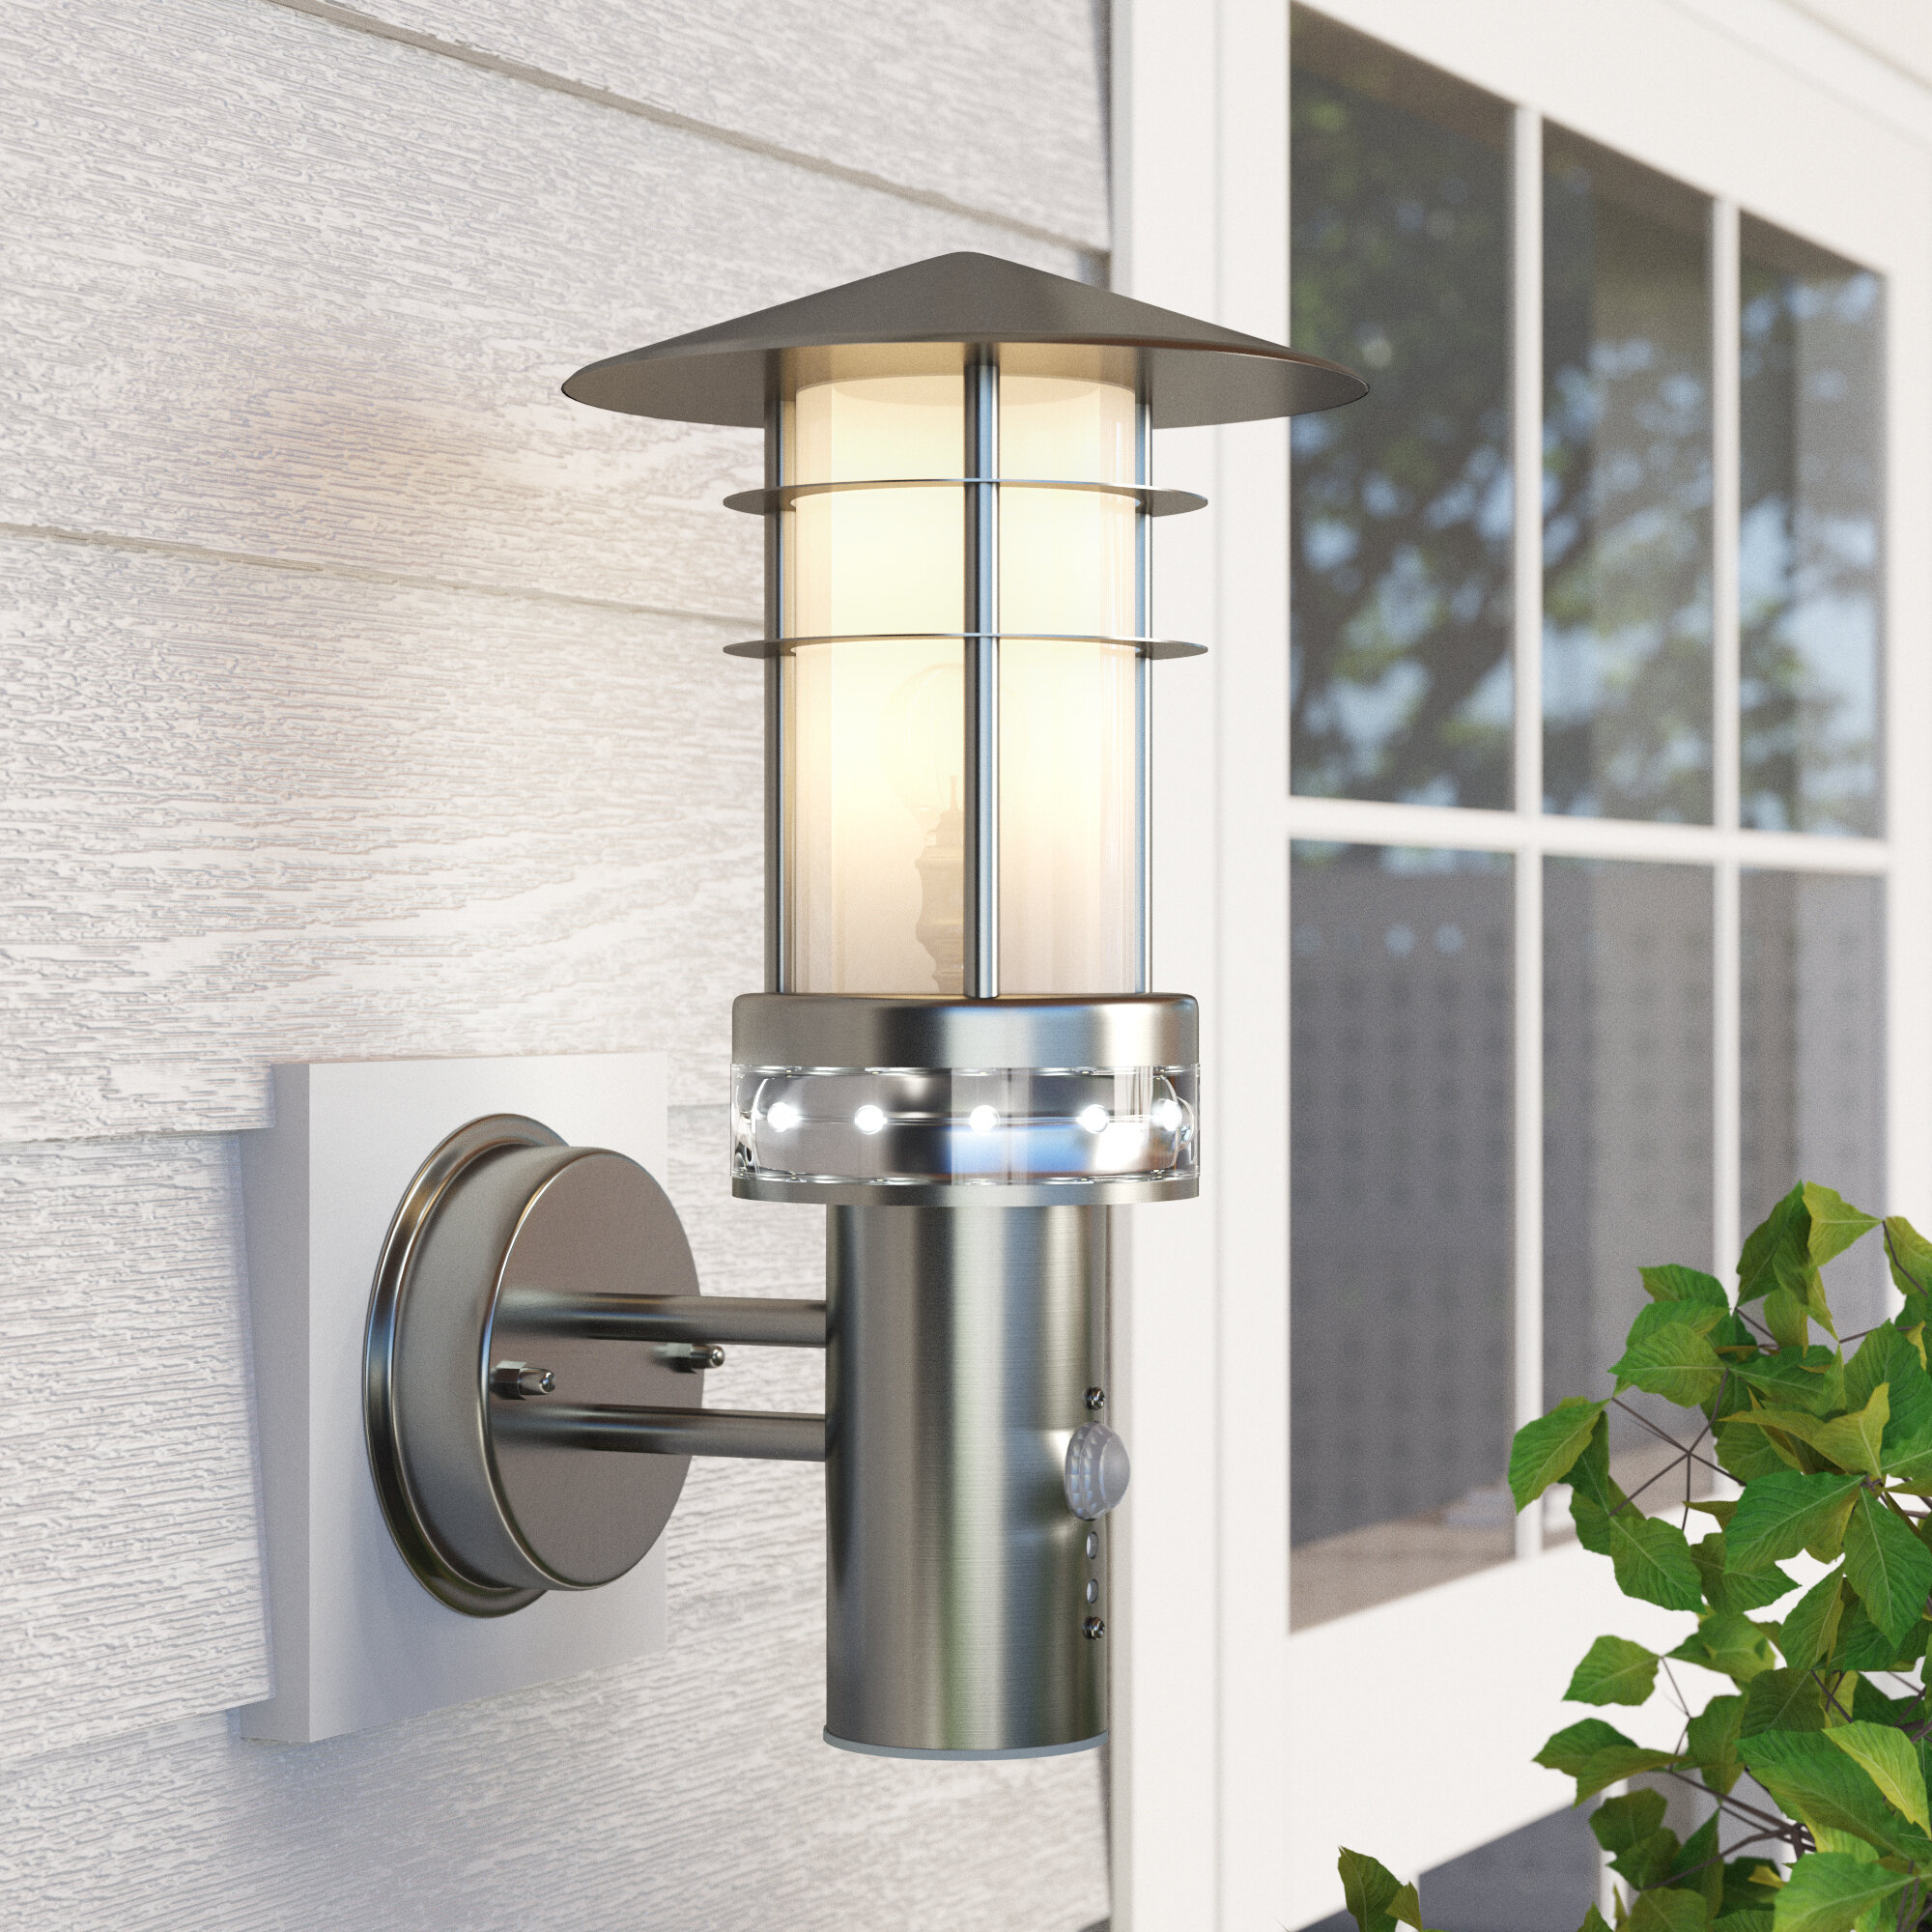 Light Outdoor Sconce With Motion Sensor